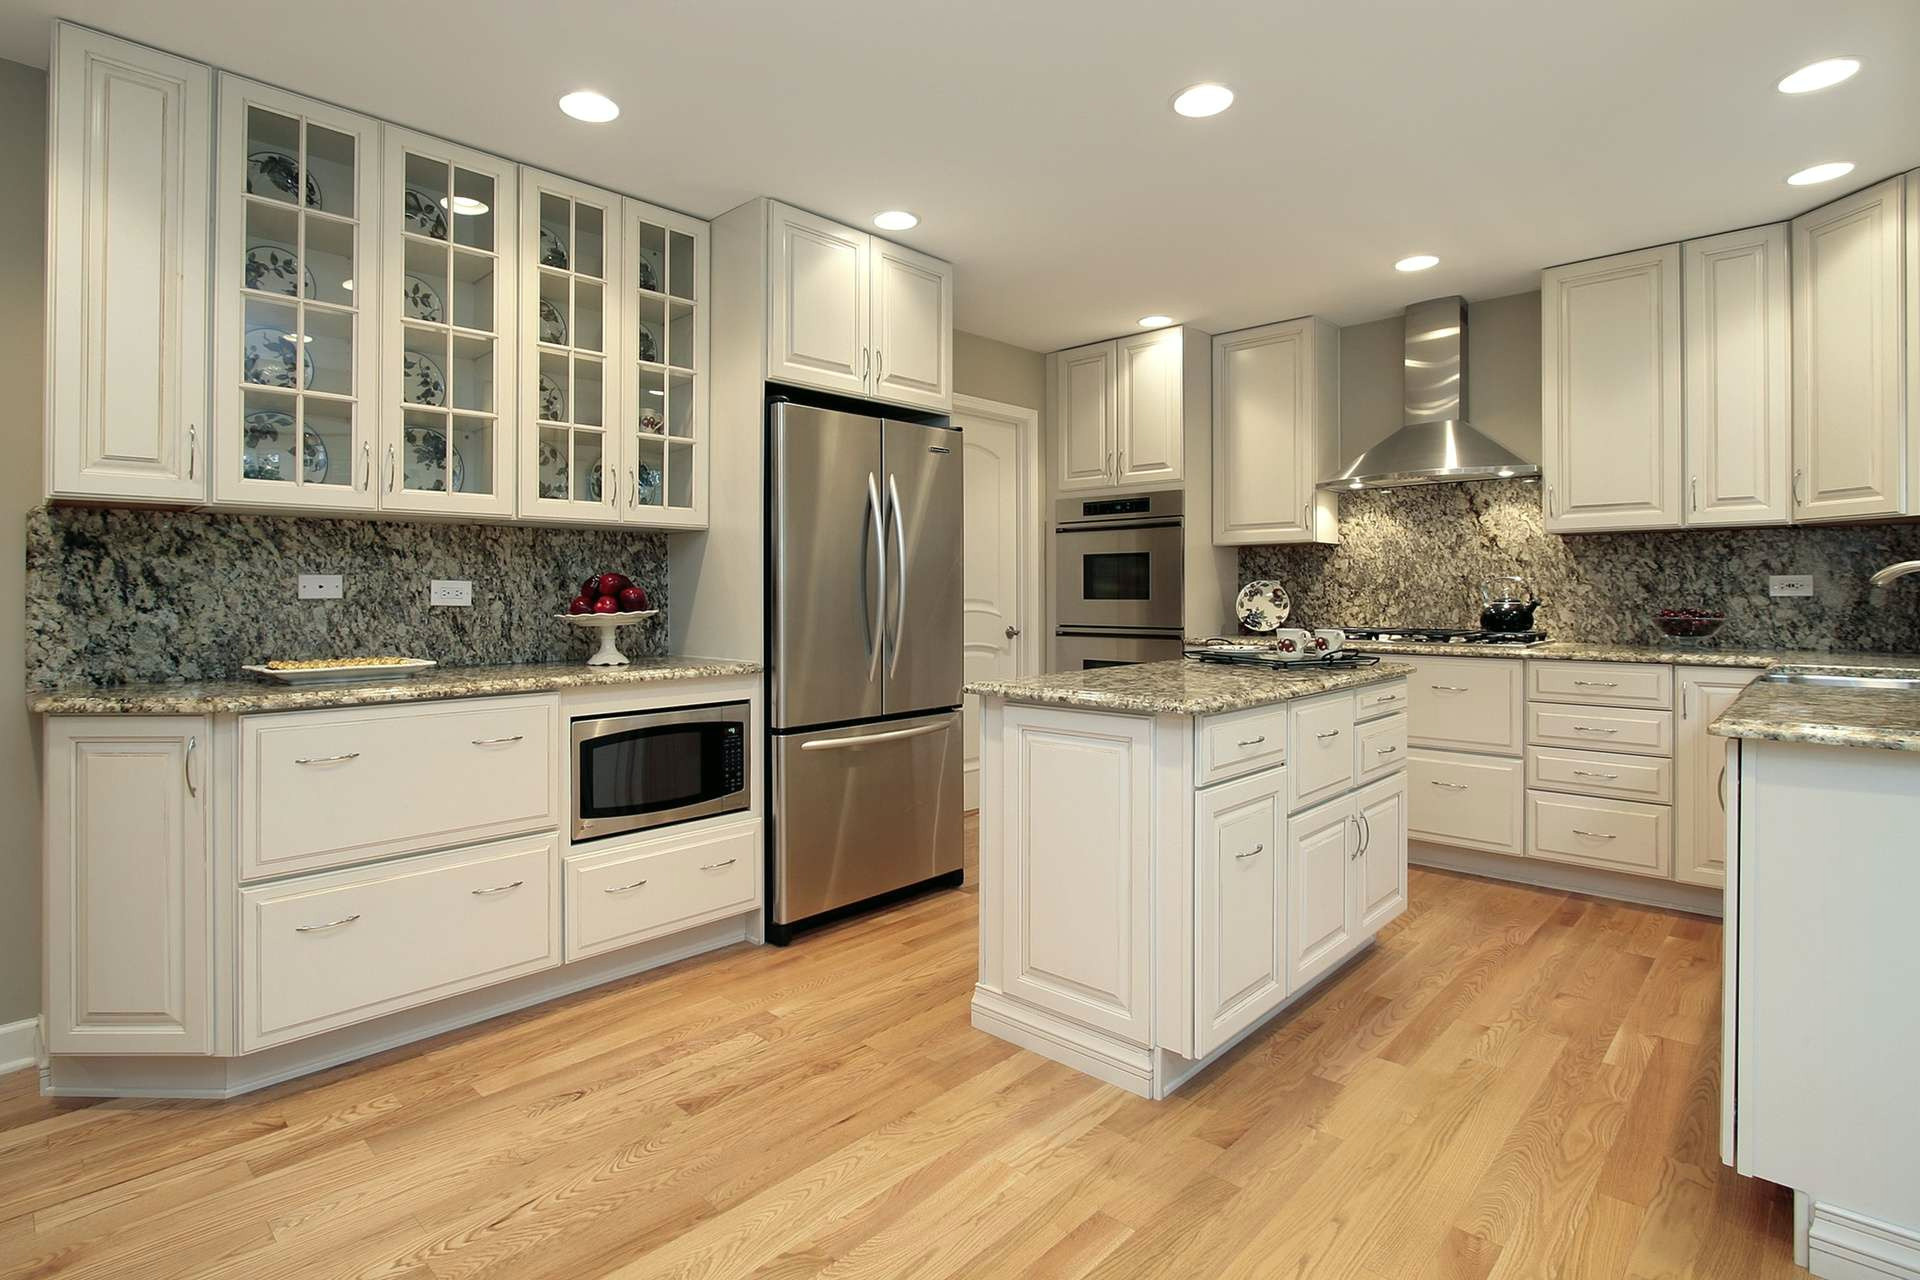 hardwood floor colors images of most popular kitchen cabinet color 2017 fresh pickled maple kitchen inside most popular kitchen cabinet color 2017 best of what color hardwood floor with white kitchen cabinets